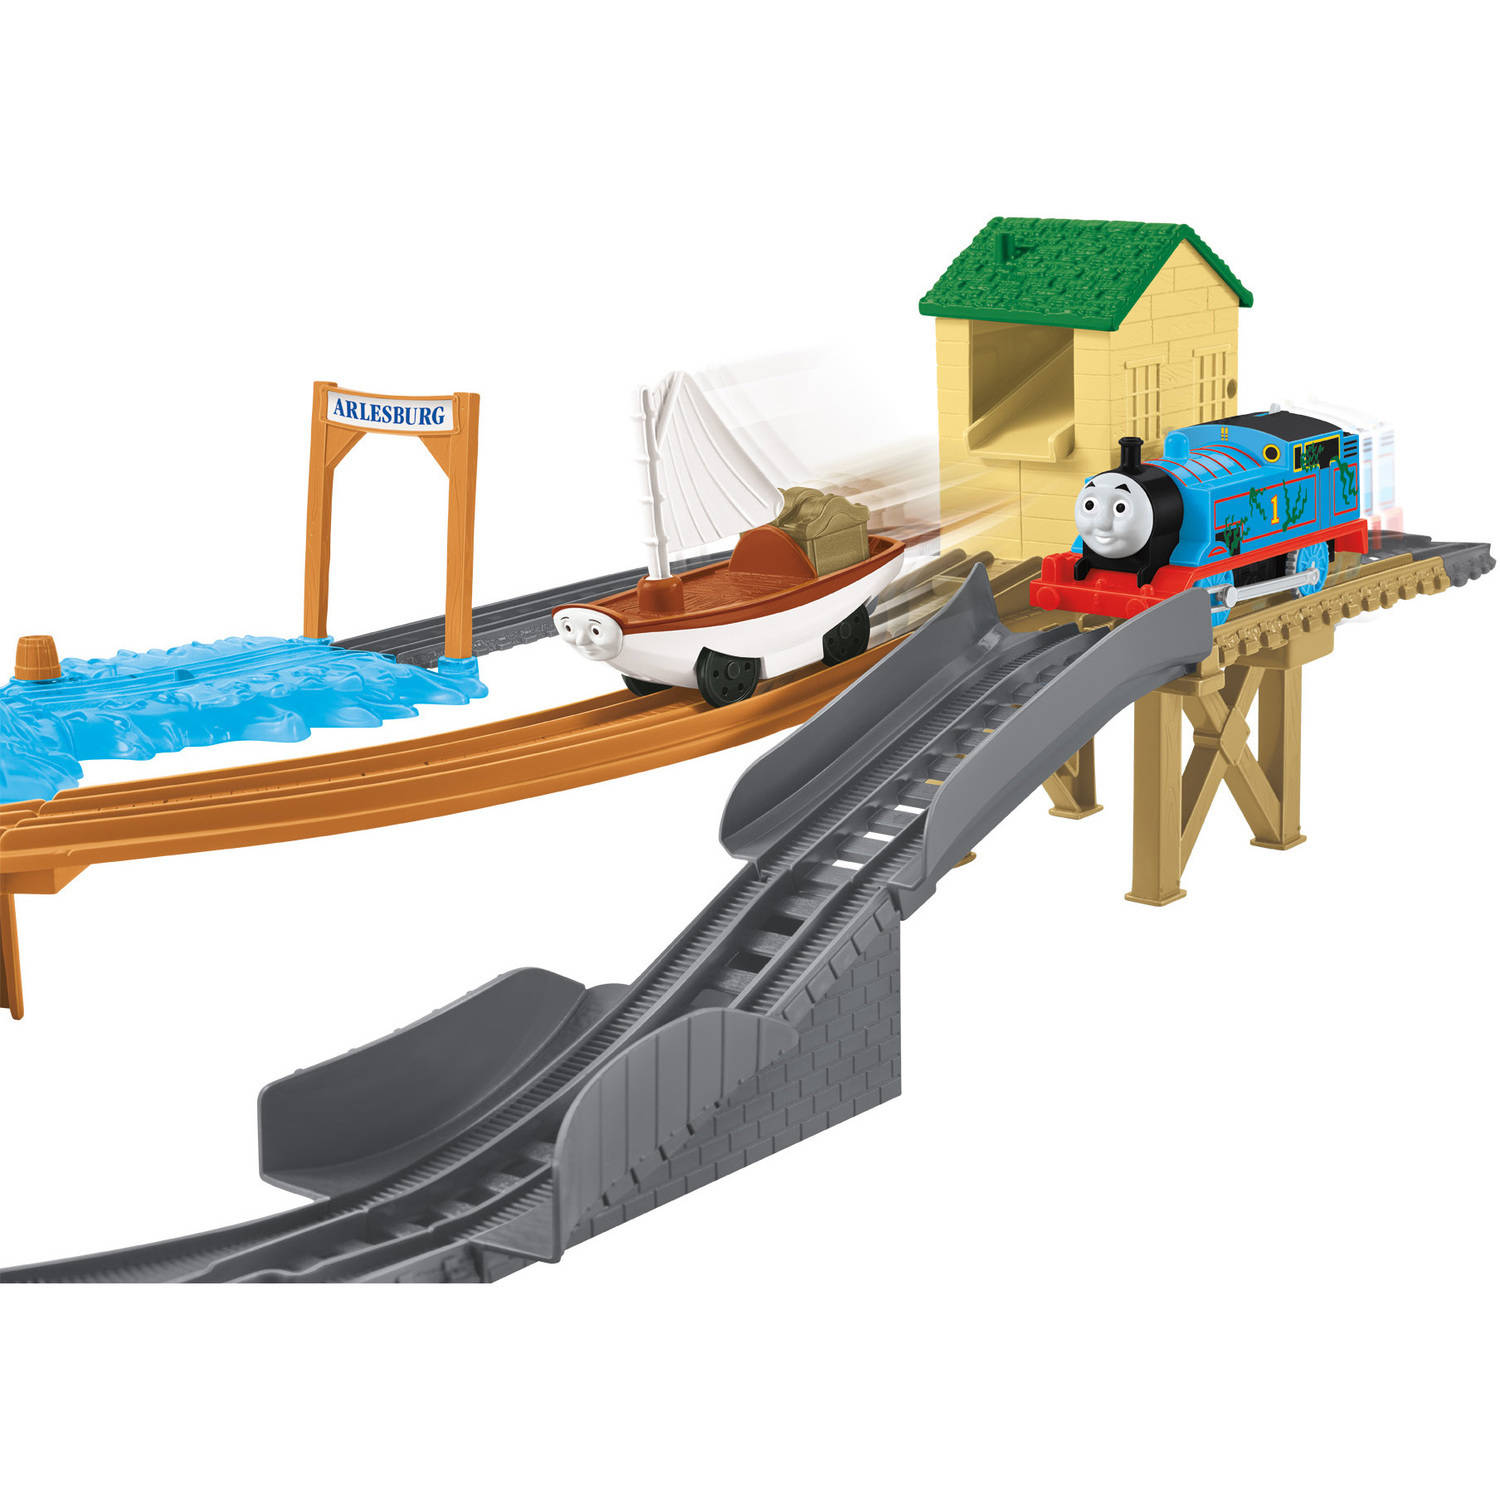 Fisher price thomas amp friends trackmaster treasure chase set new - Fisher Price Thomas Amp Friends Trackmaster Treasure Chase Set New 0